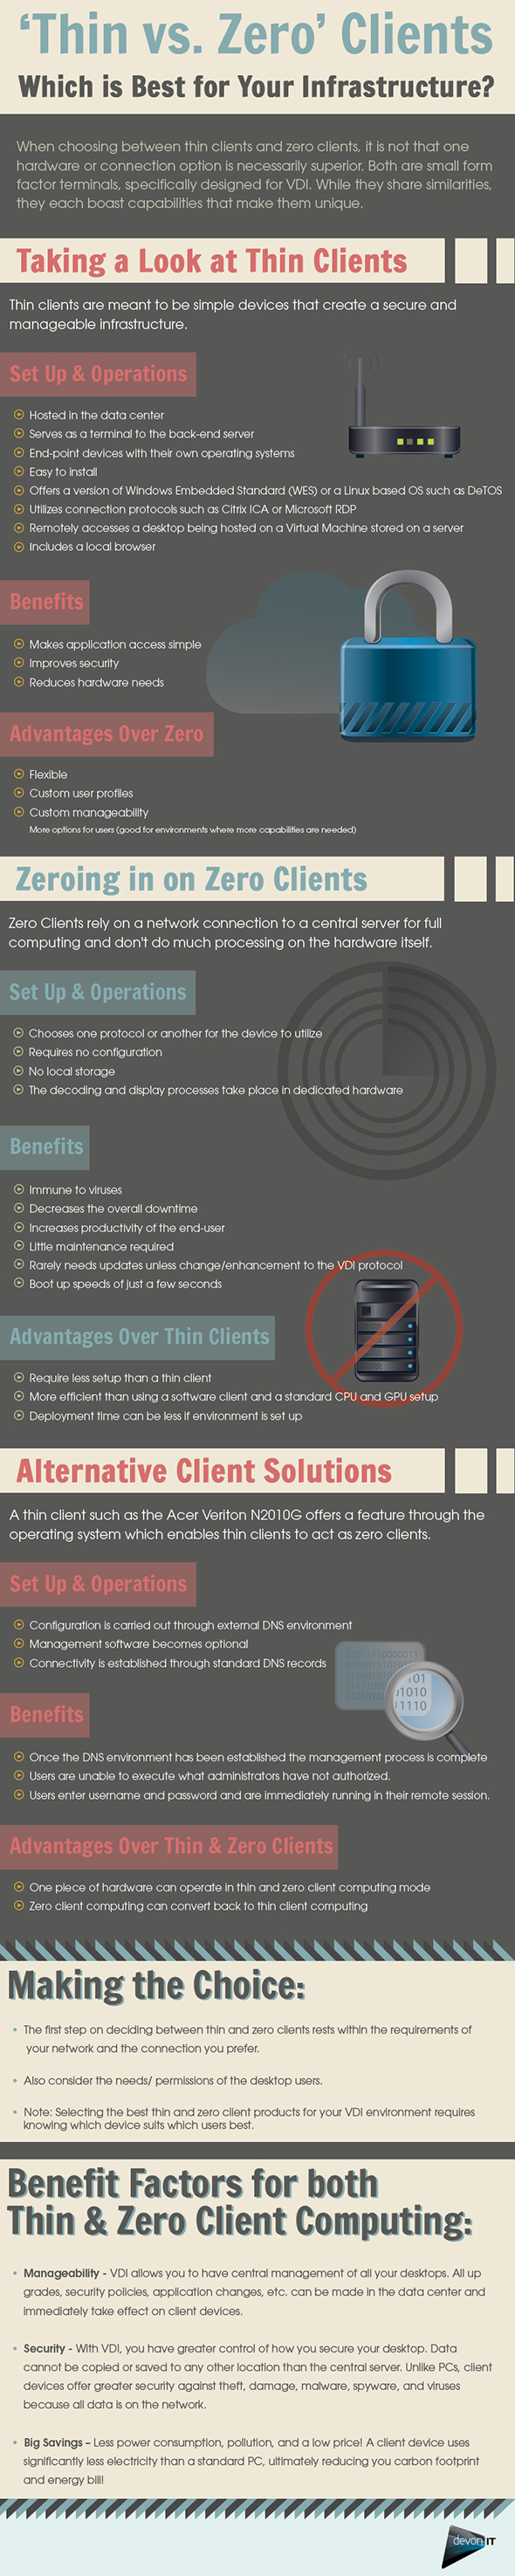 VDI Client Options-Infographic